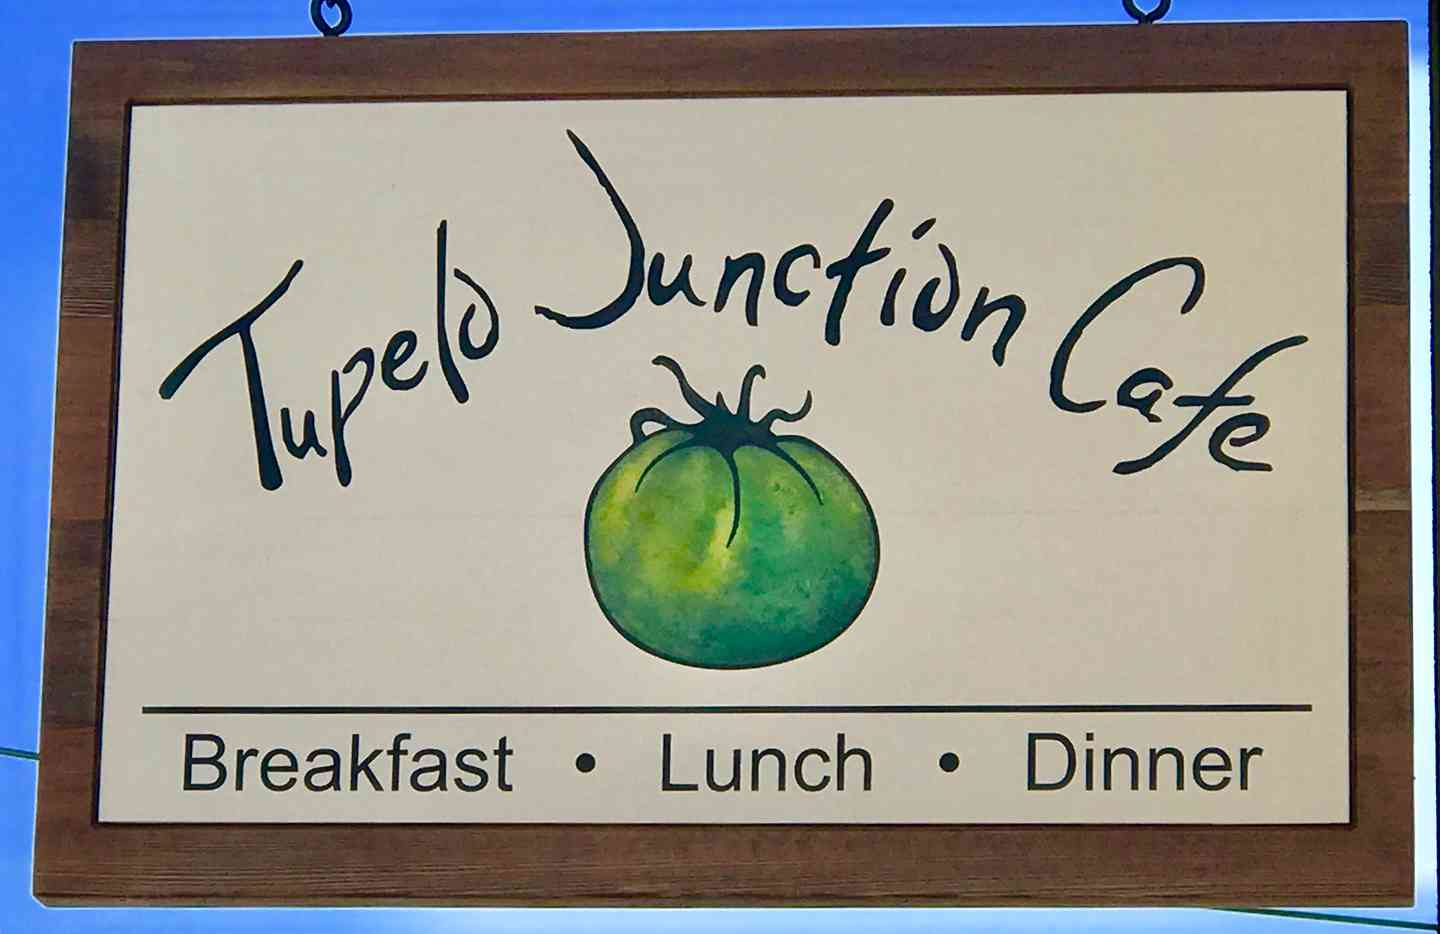 Tupelo Junction Cafe sign